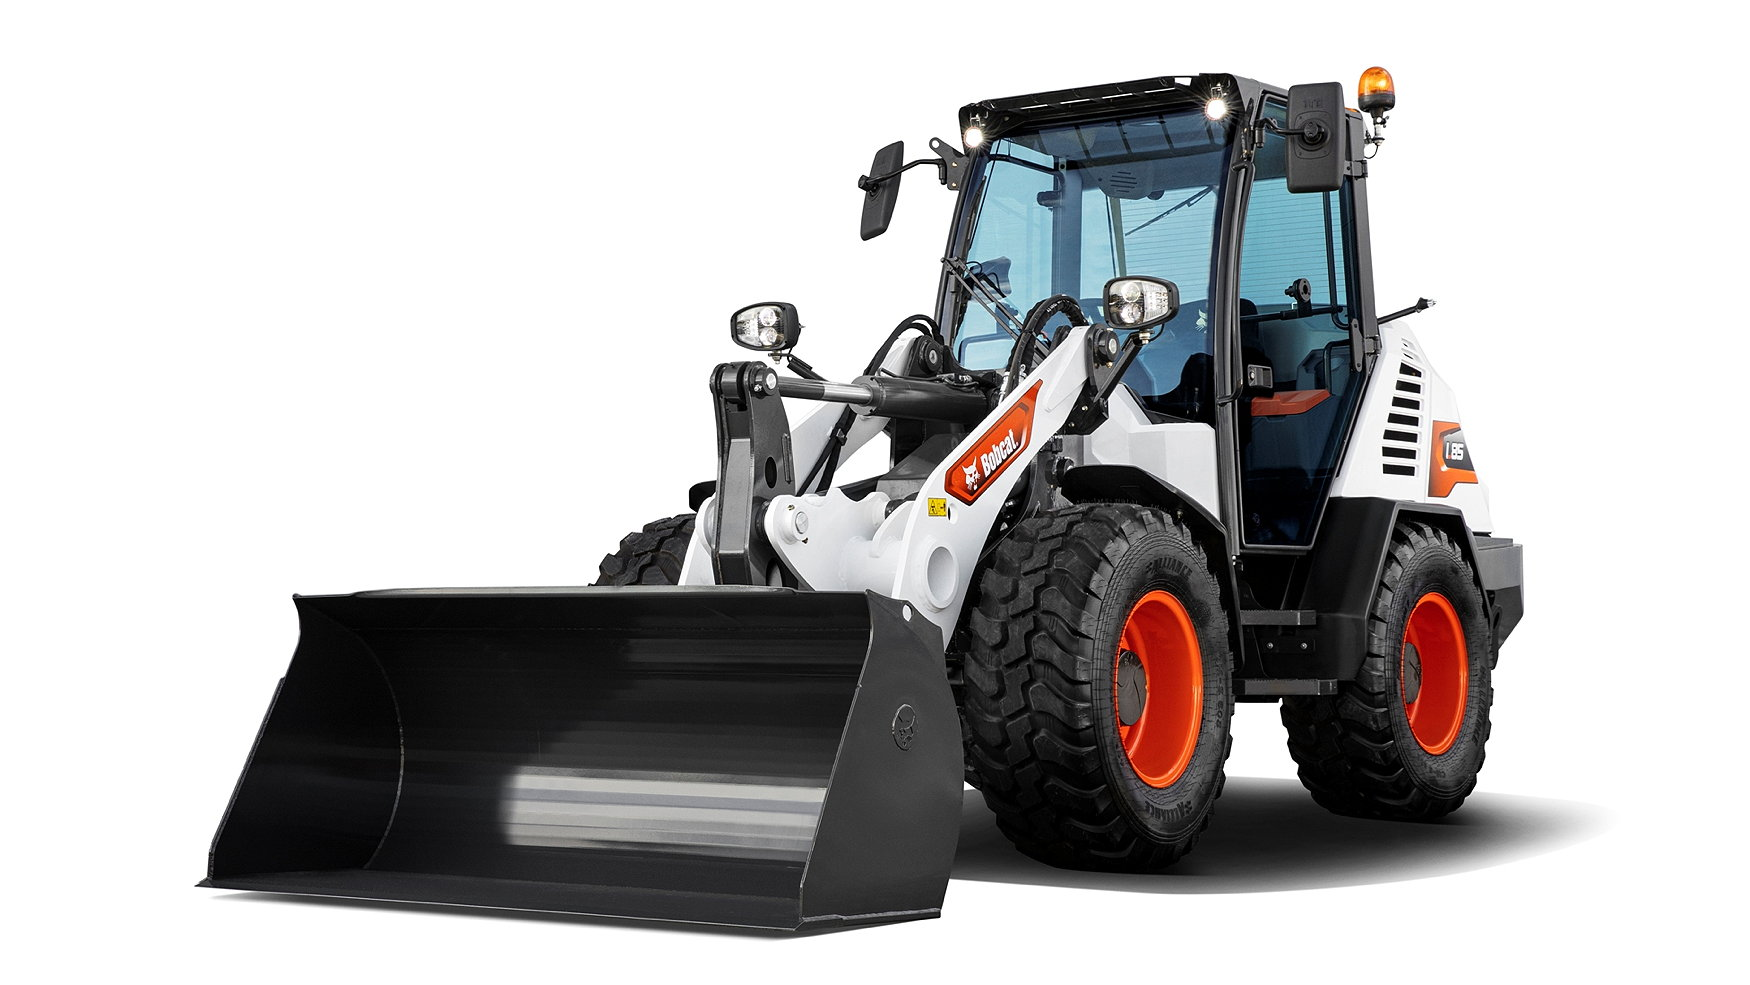 Bobcat's new L85 wheeled loader